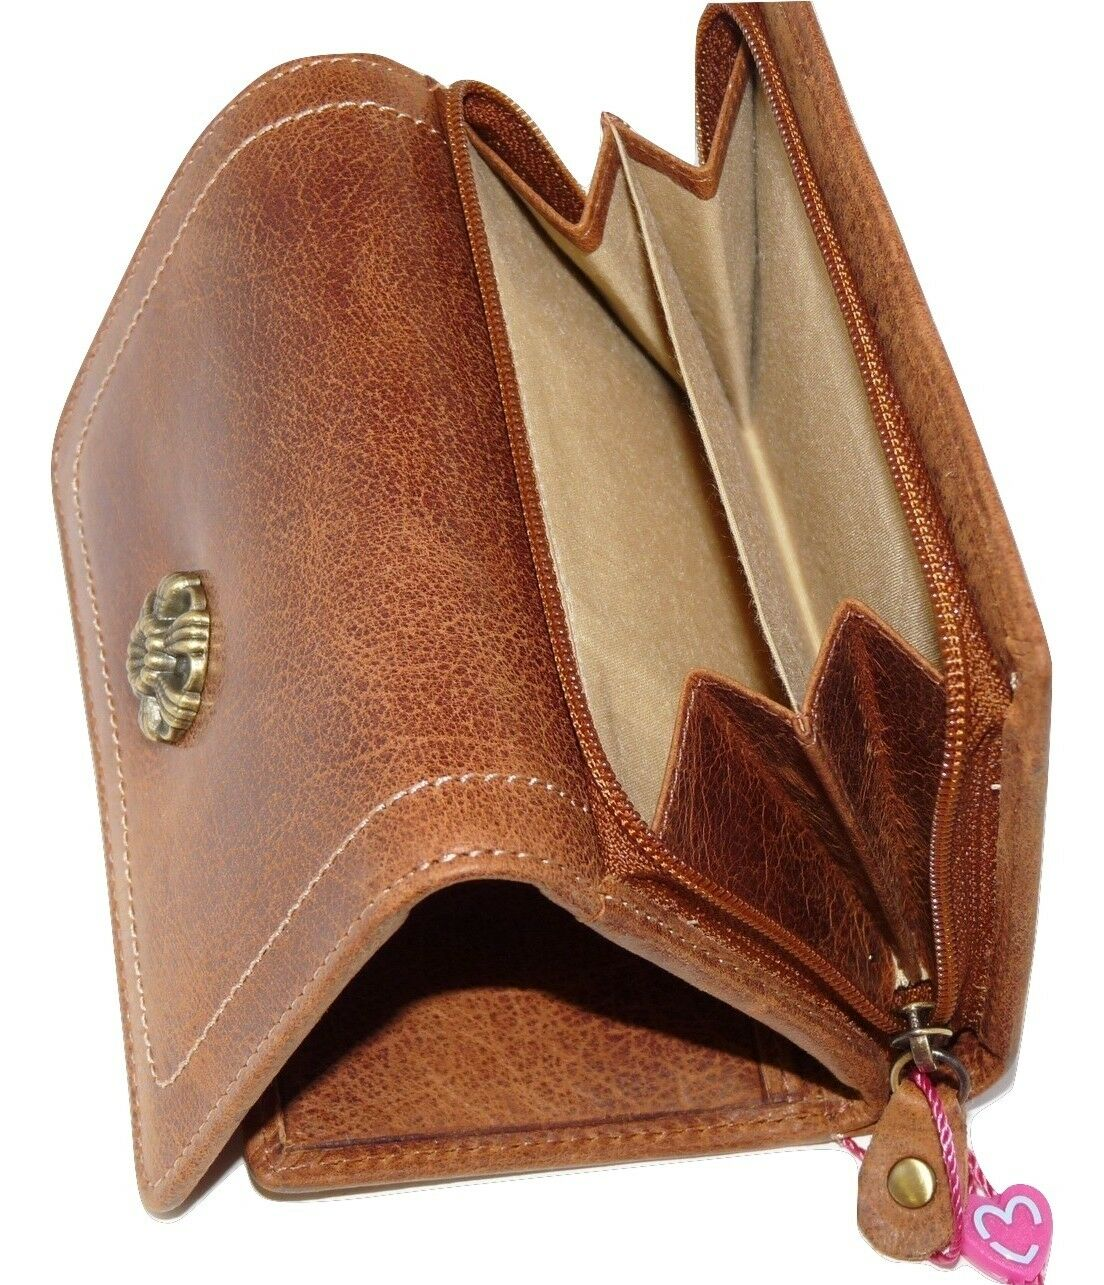 Mala leather 4129 88 NEW RFID Protection coin purse NEW Tudor collection tan